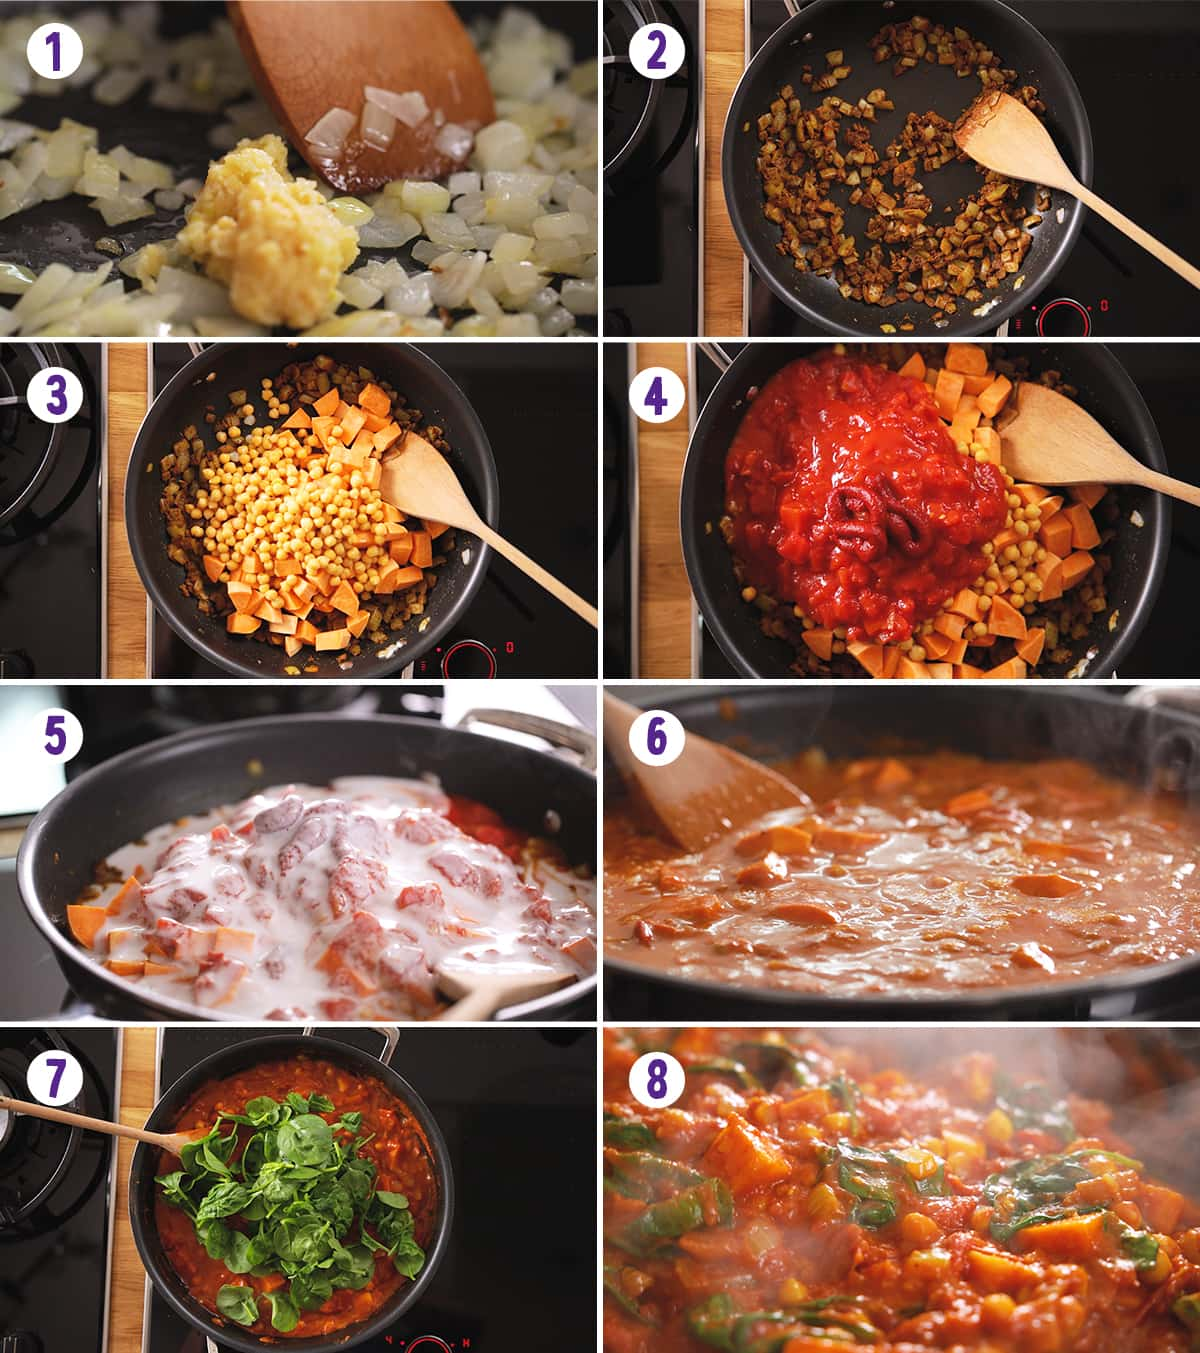 8 image collage showing how to make chickpea and sweet potato curry